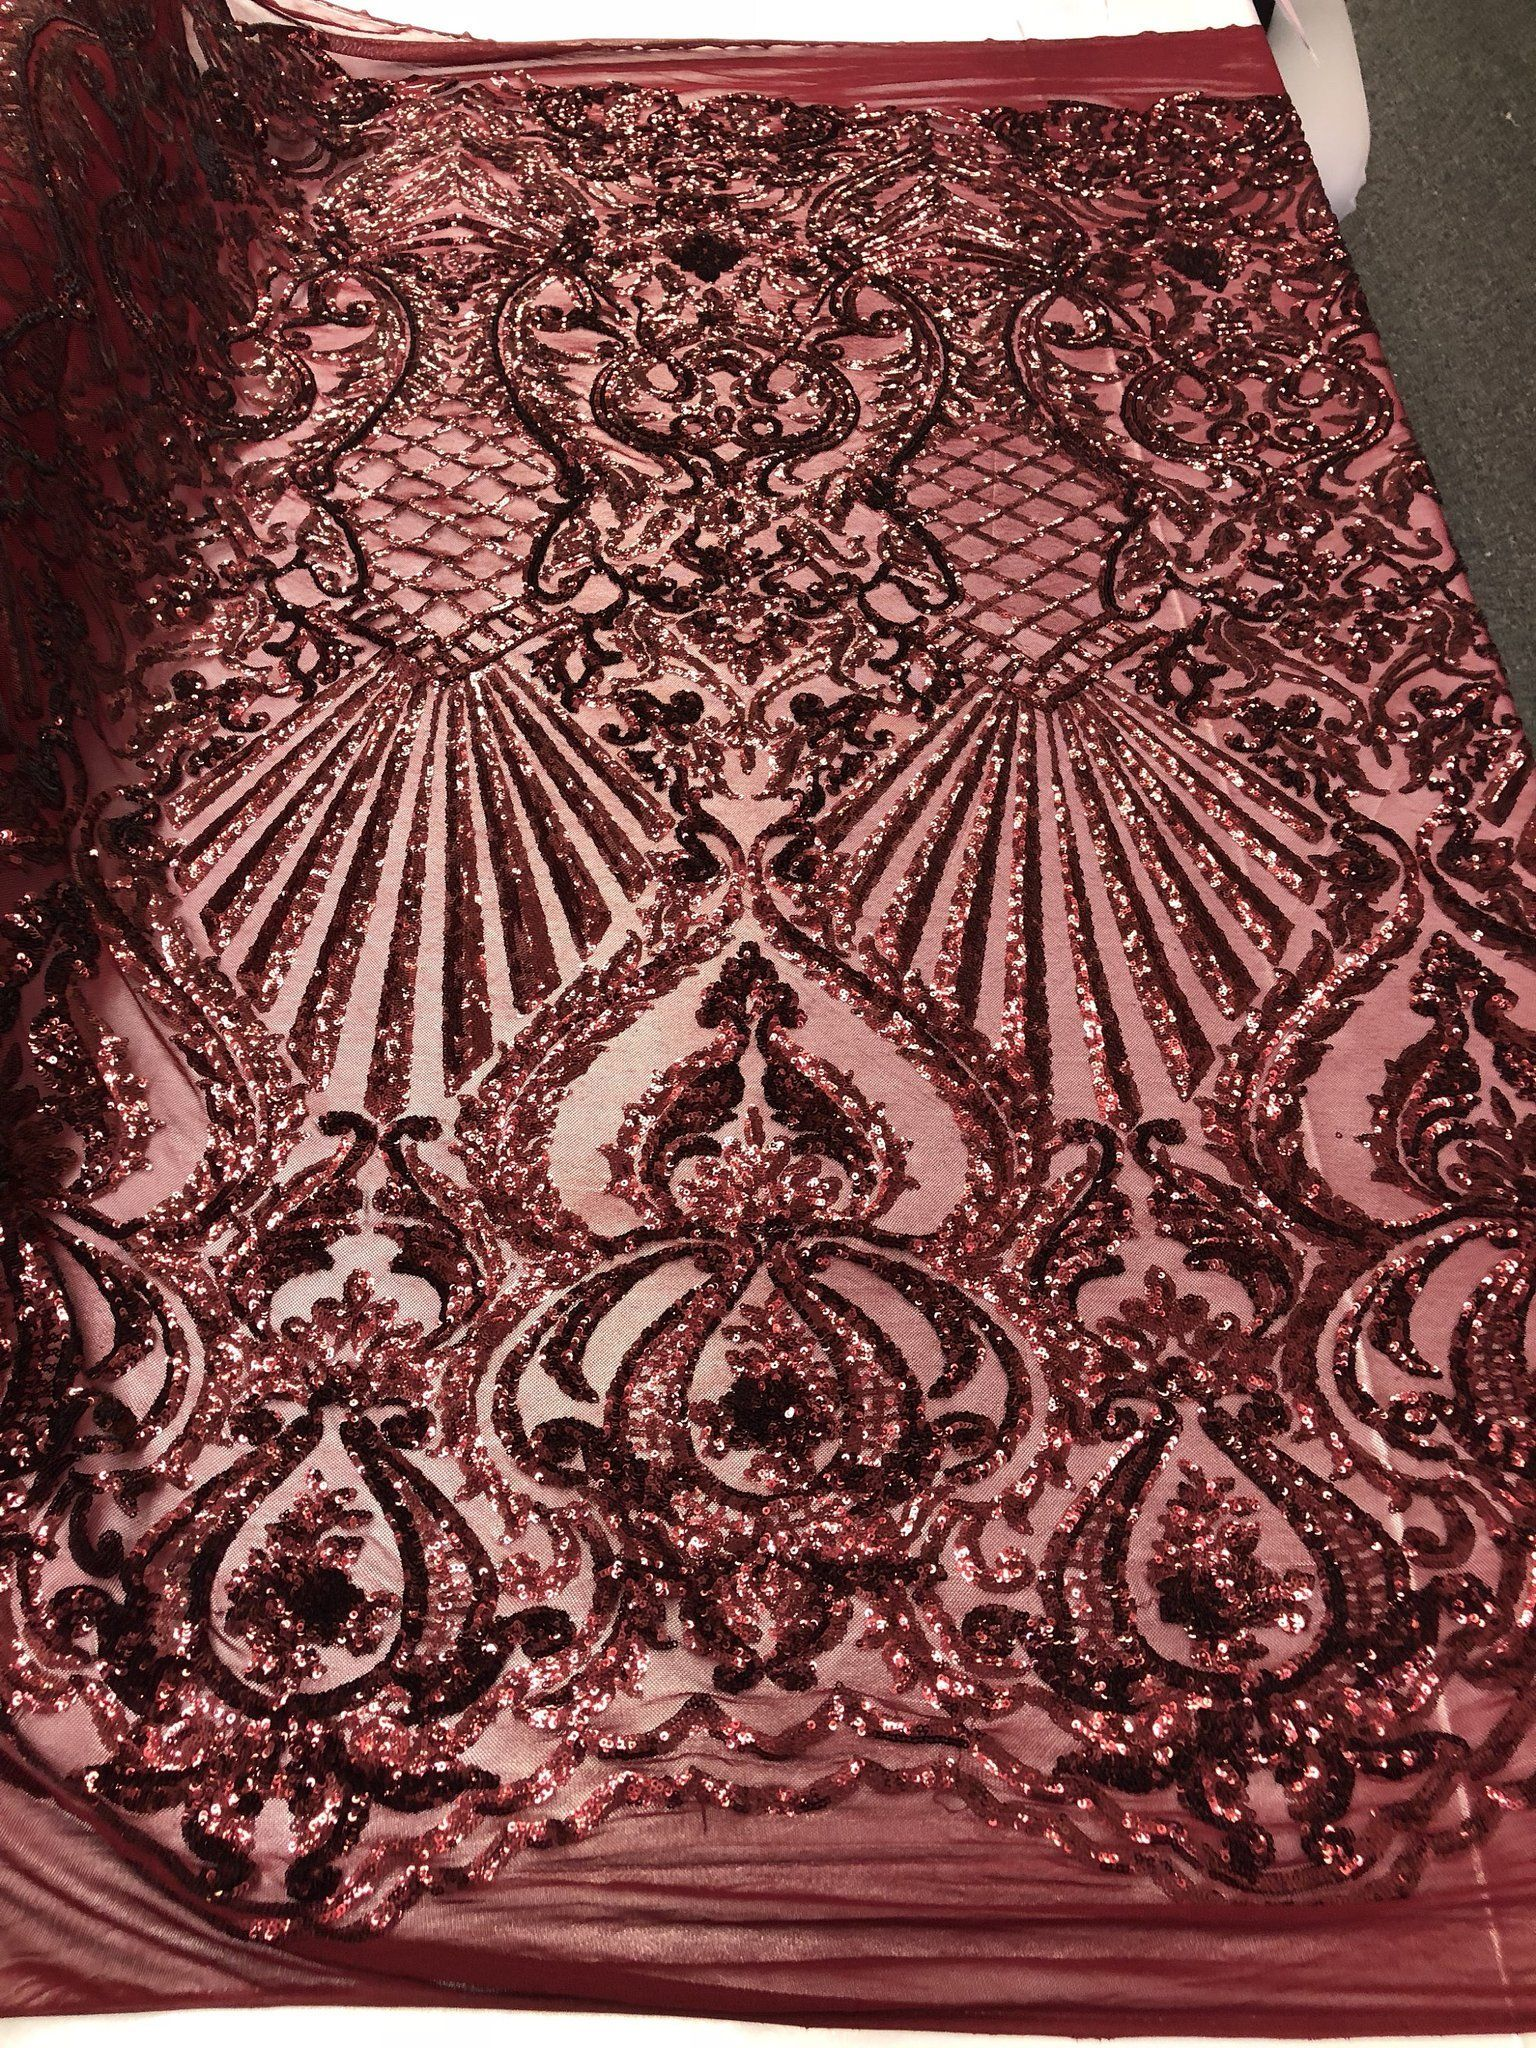 Red Sequins Fabric 4 Way Stretch Embroidered On Mesh Lace Fabric By The Yard